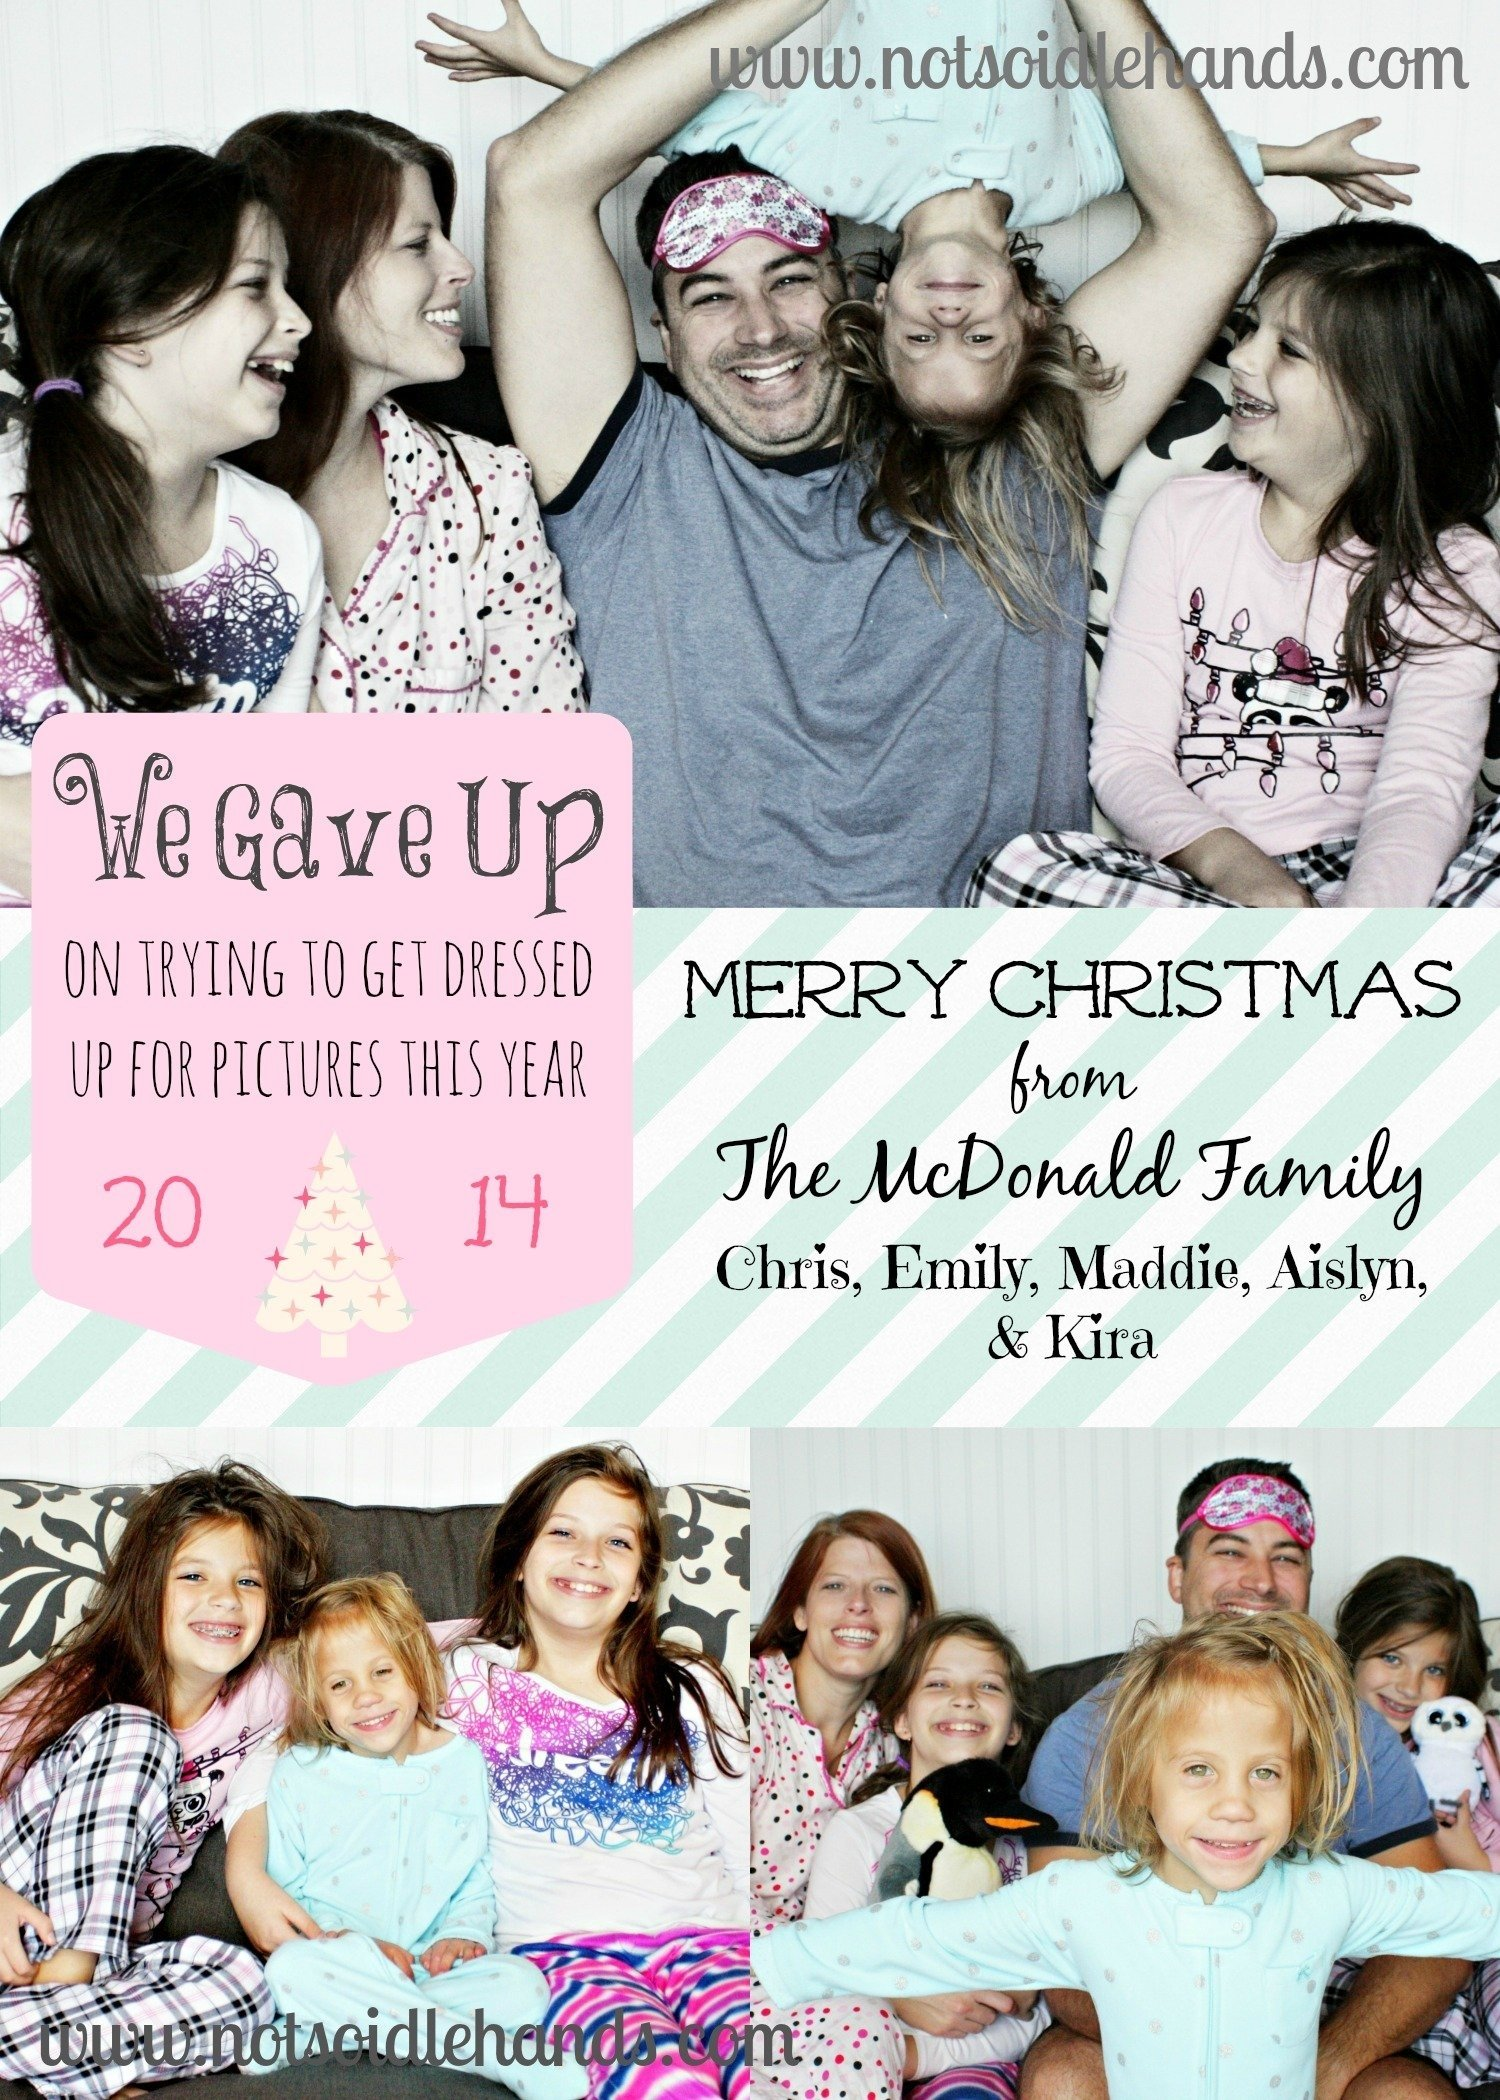 10 Perfect Funny Christmas Card Picture Ideas 25 funny christmas card ideas family christmas card photos with 1 2020